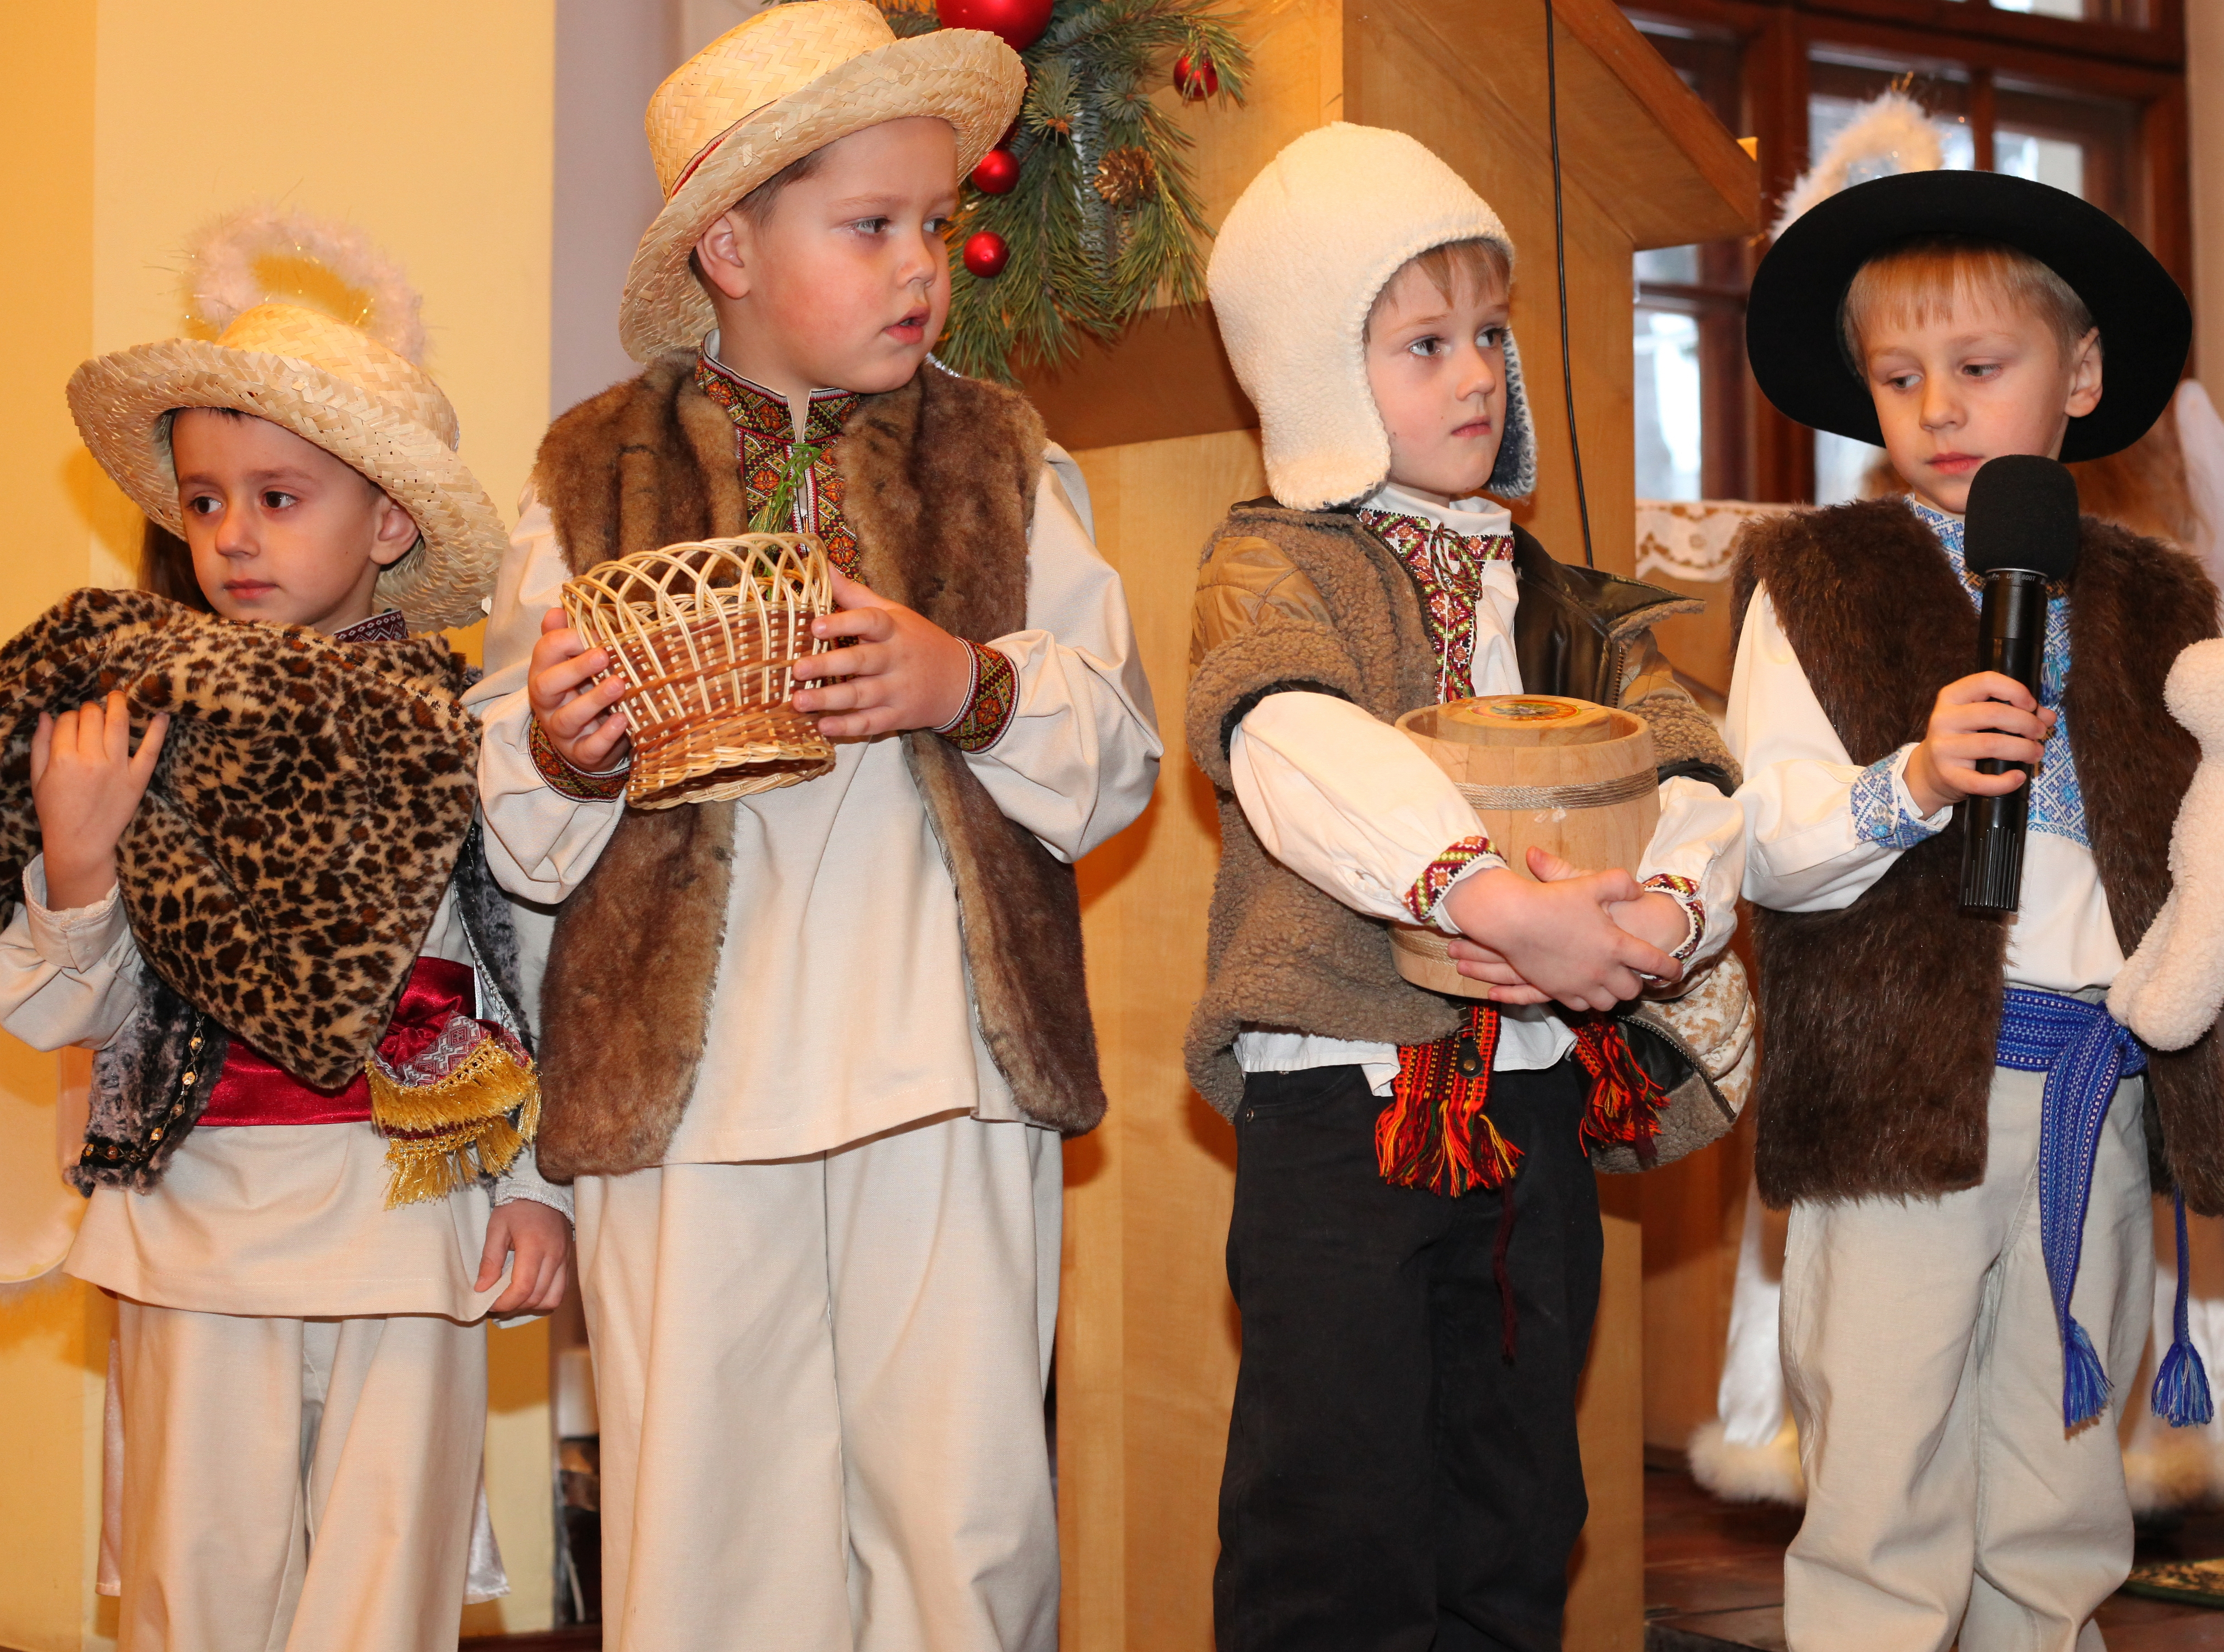 the nativity performance in a Catholic kindergarten, photo 6